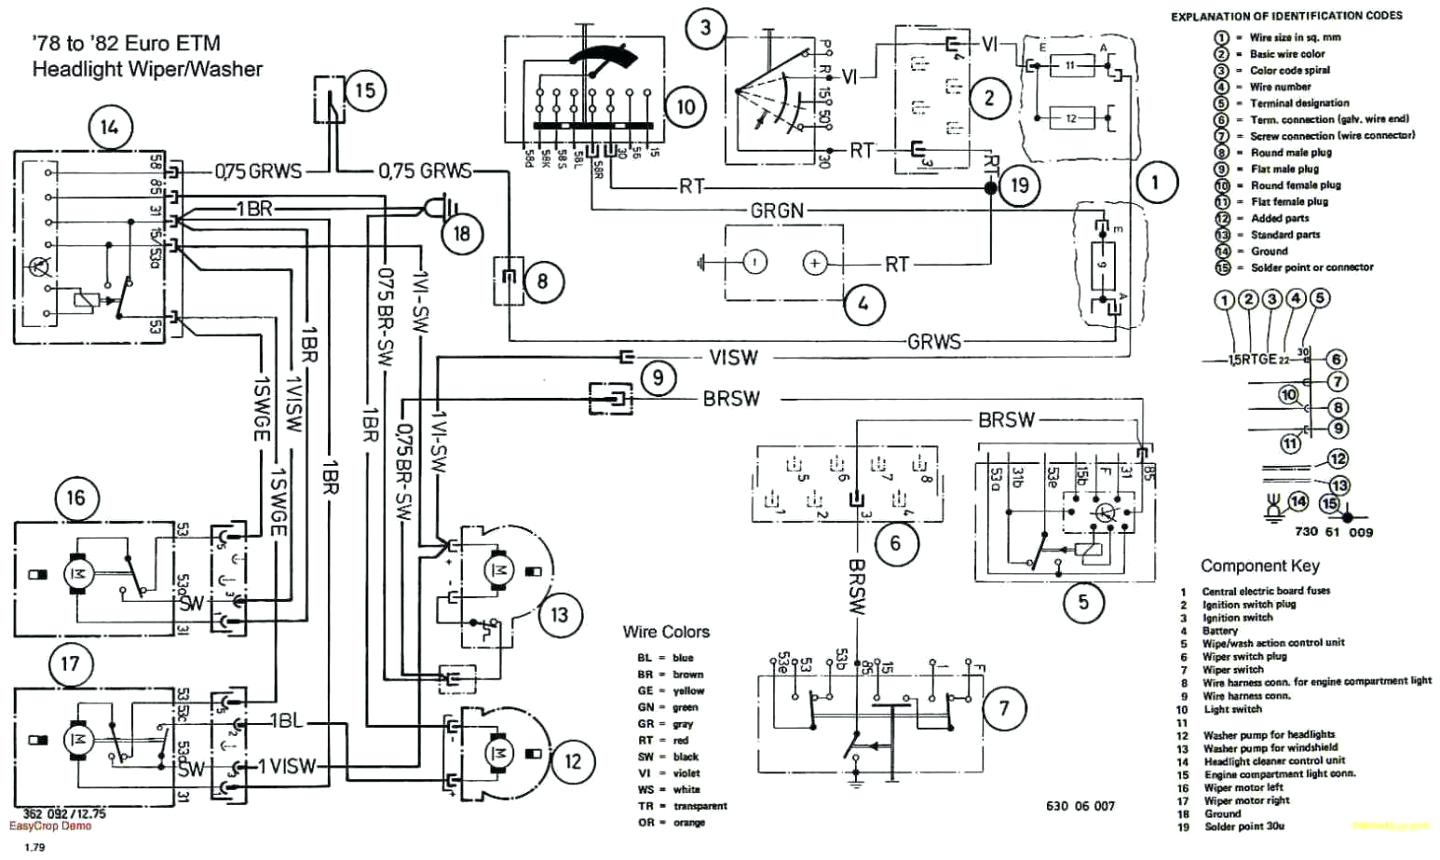 Wiring Diagram Page 2 Get Free Image About Wiring Diagram